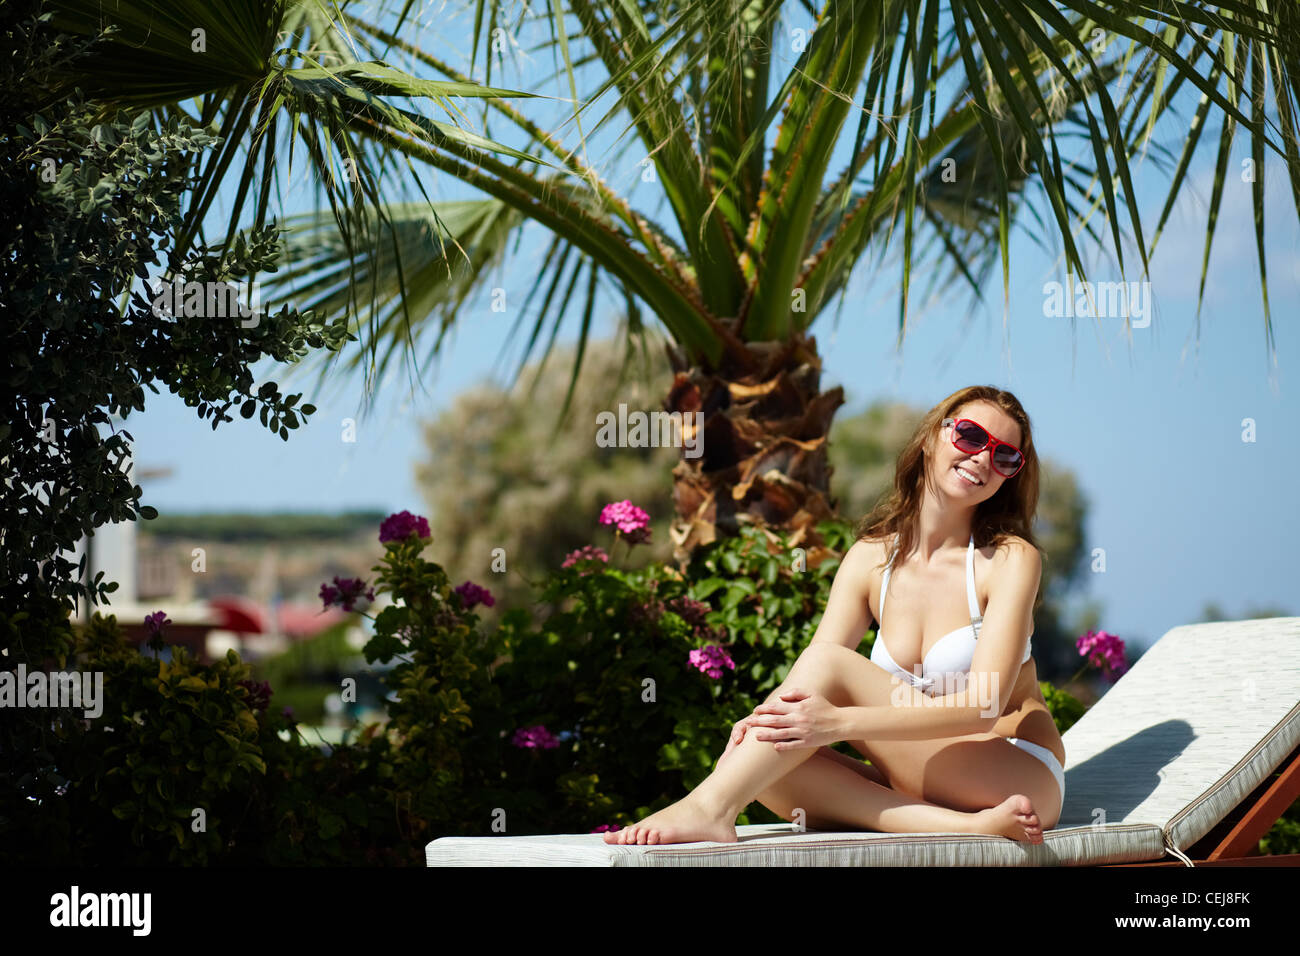 Attractive woman sitting on chaise lounge and smiling at camera - Stock Image